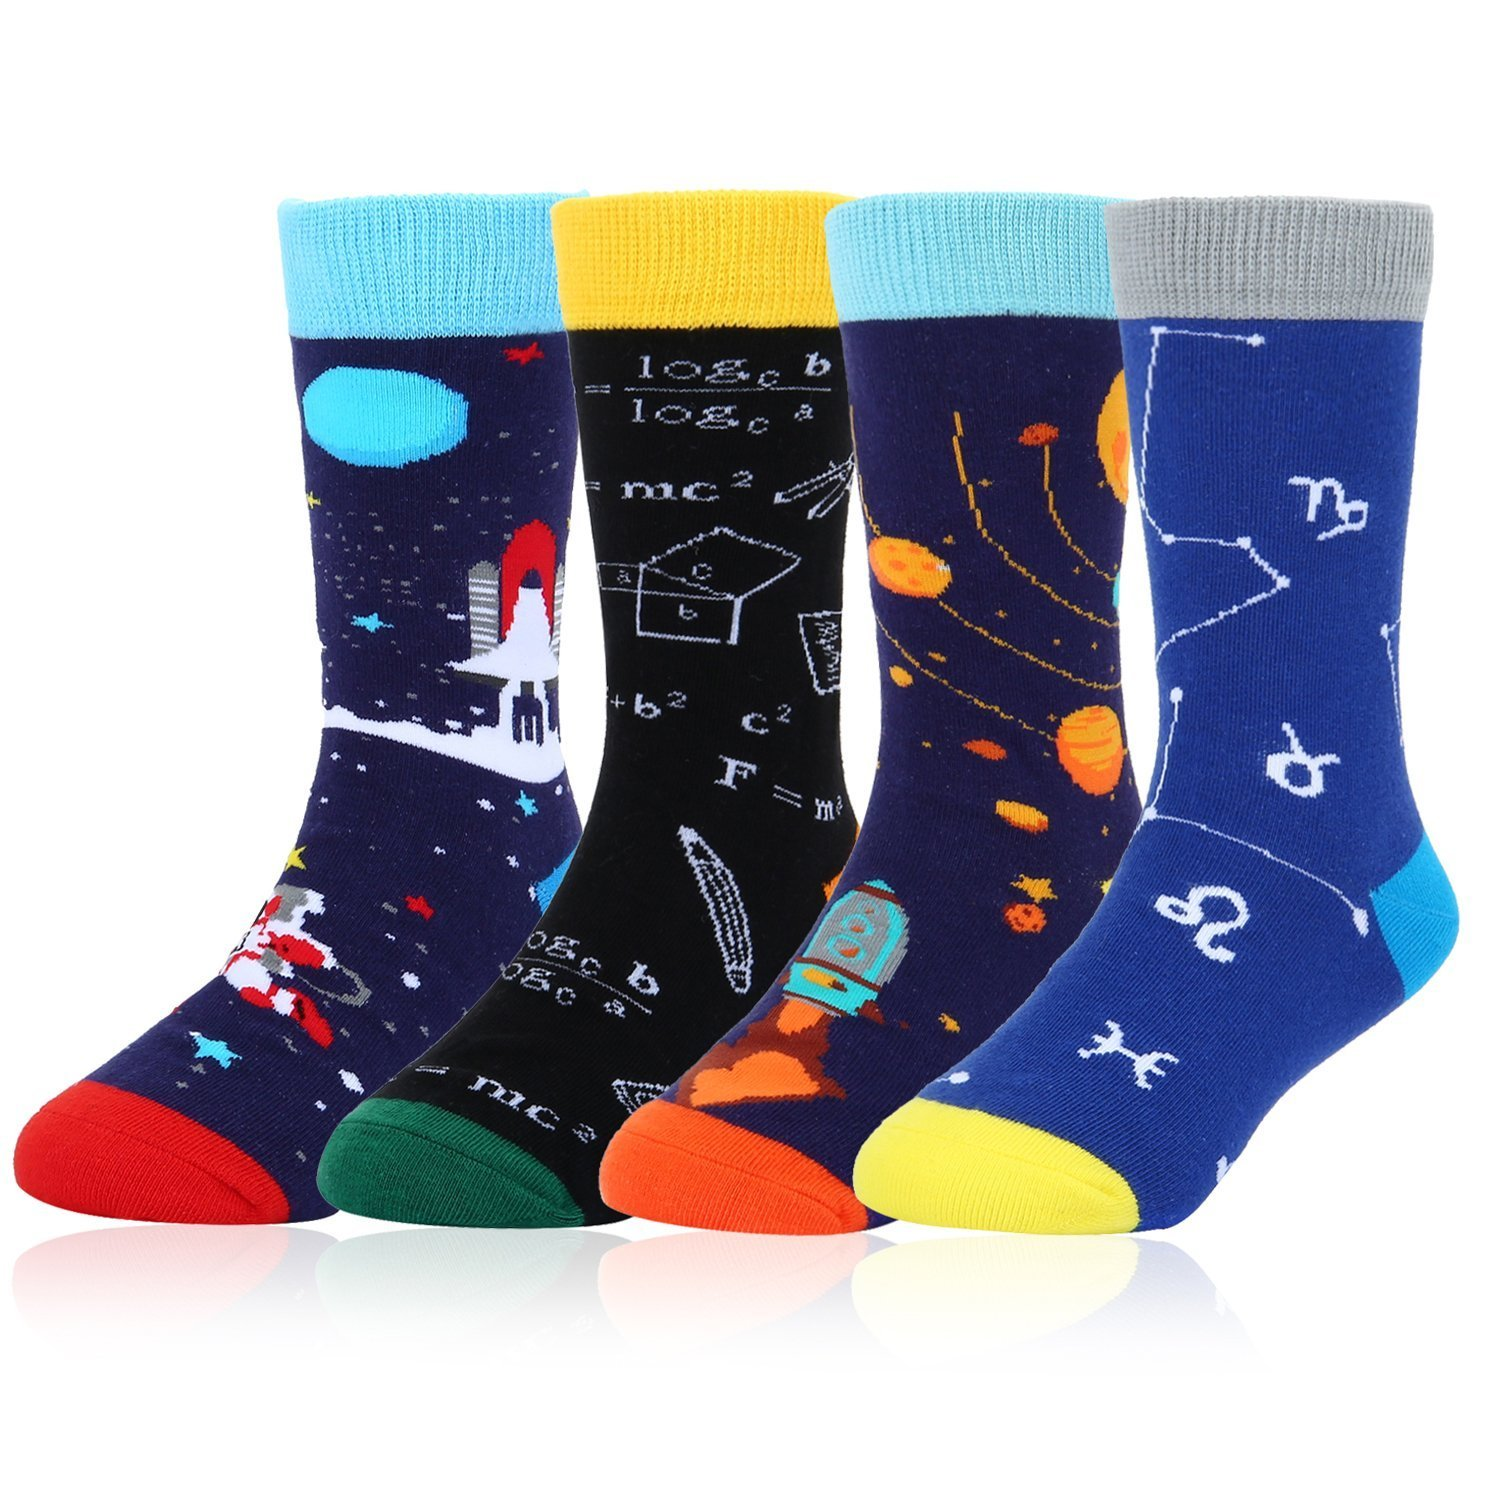 Boy's Children Novelty Funny Crew Socks Cool Space Sport Cotton Socks 4 Pack with Gift Box